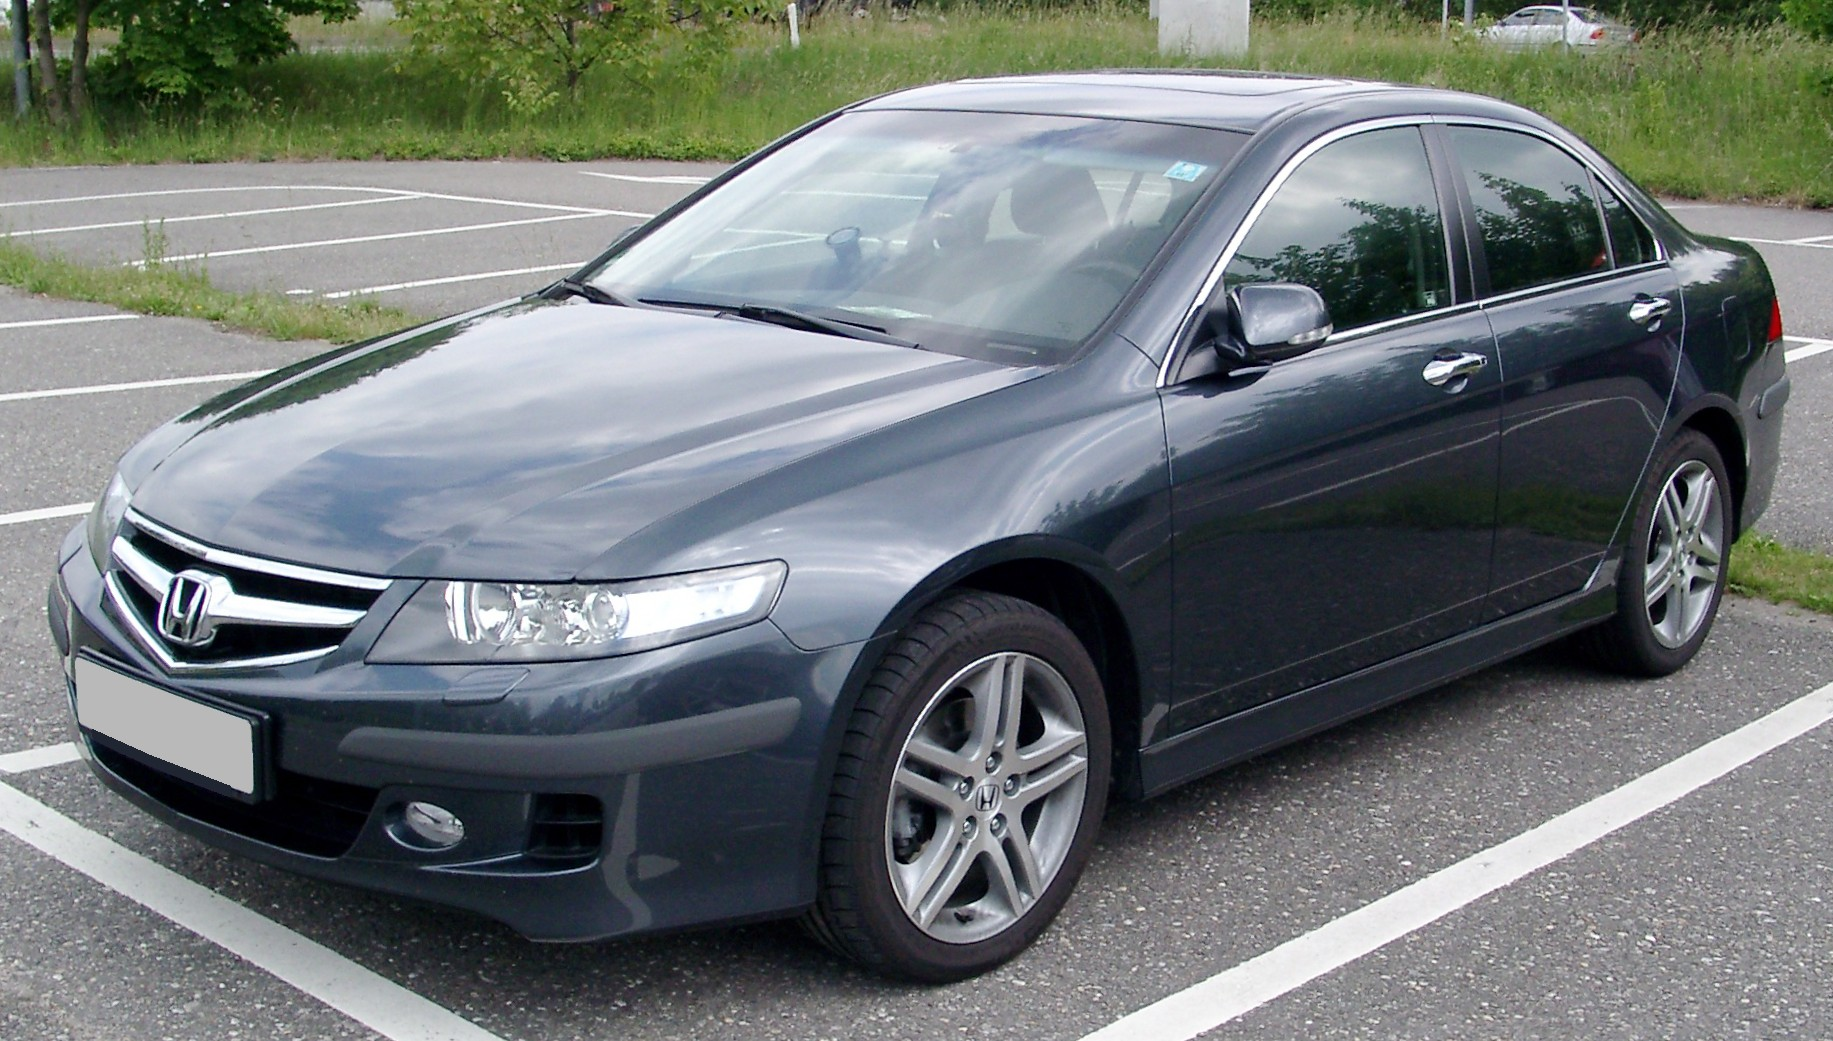 2006 honda accord vii pictures information and specs. Black Bedroom Furniture Sets. Home Design Ideas